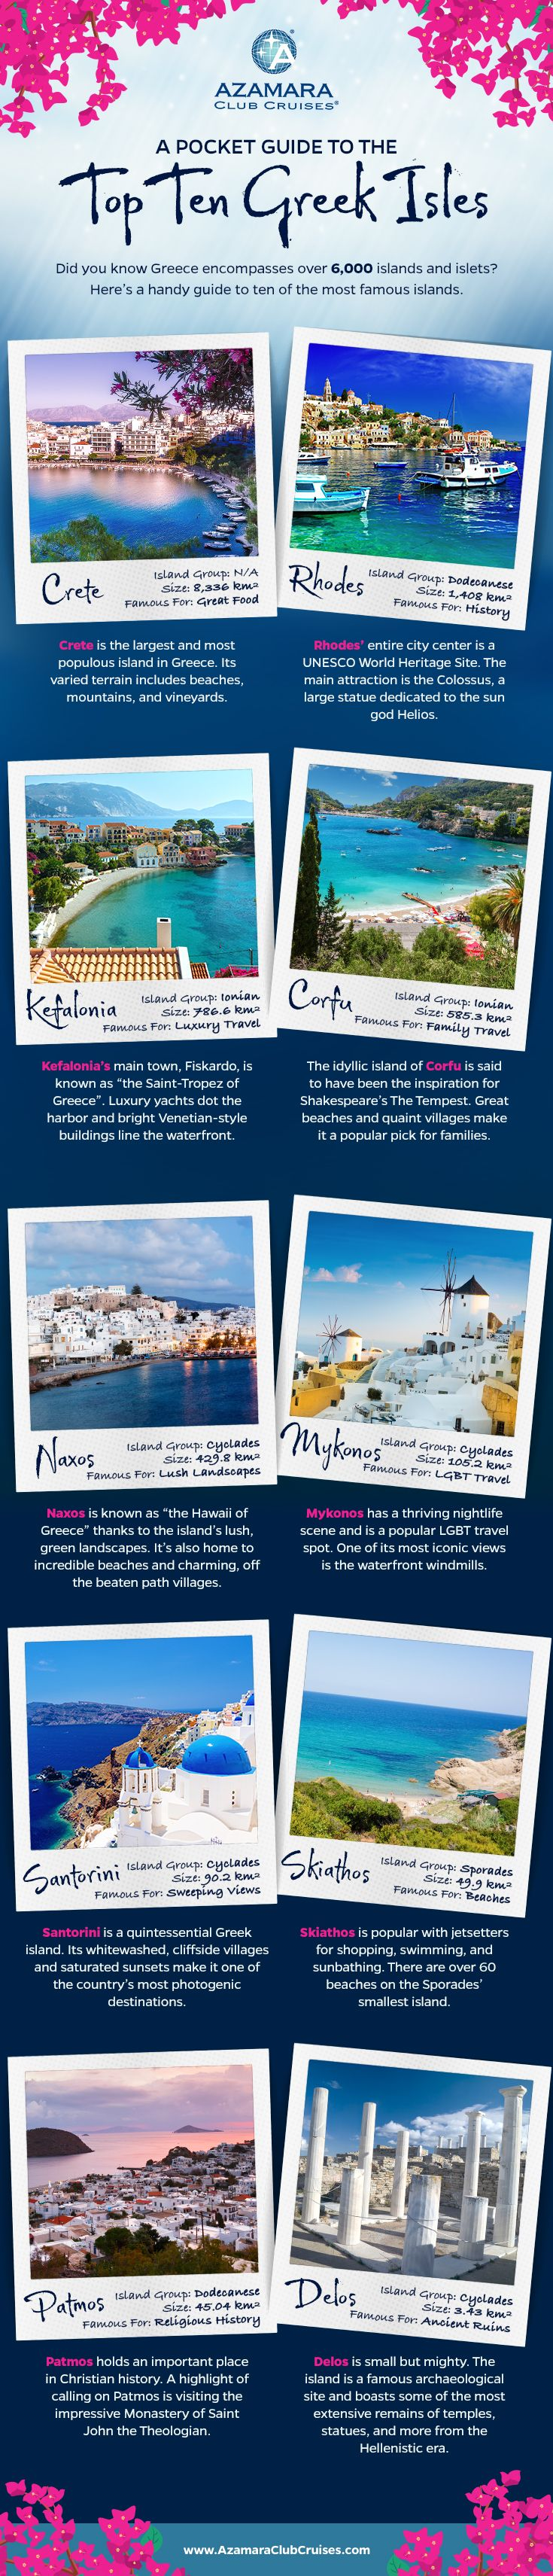 Use this quick guide to the most popular Greek Islands to plan your Mediterranean cruise.